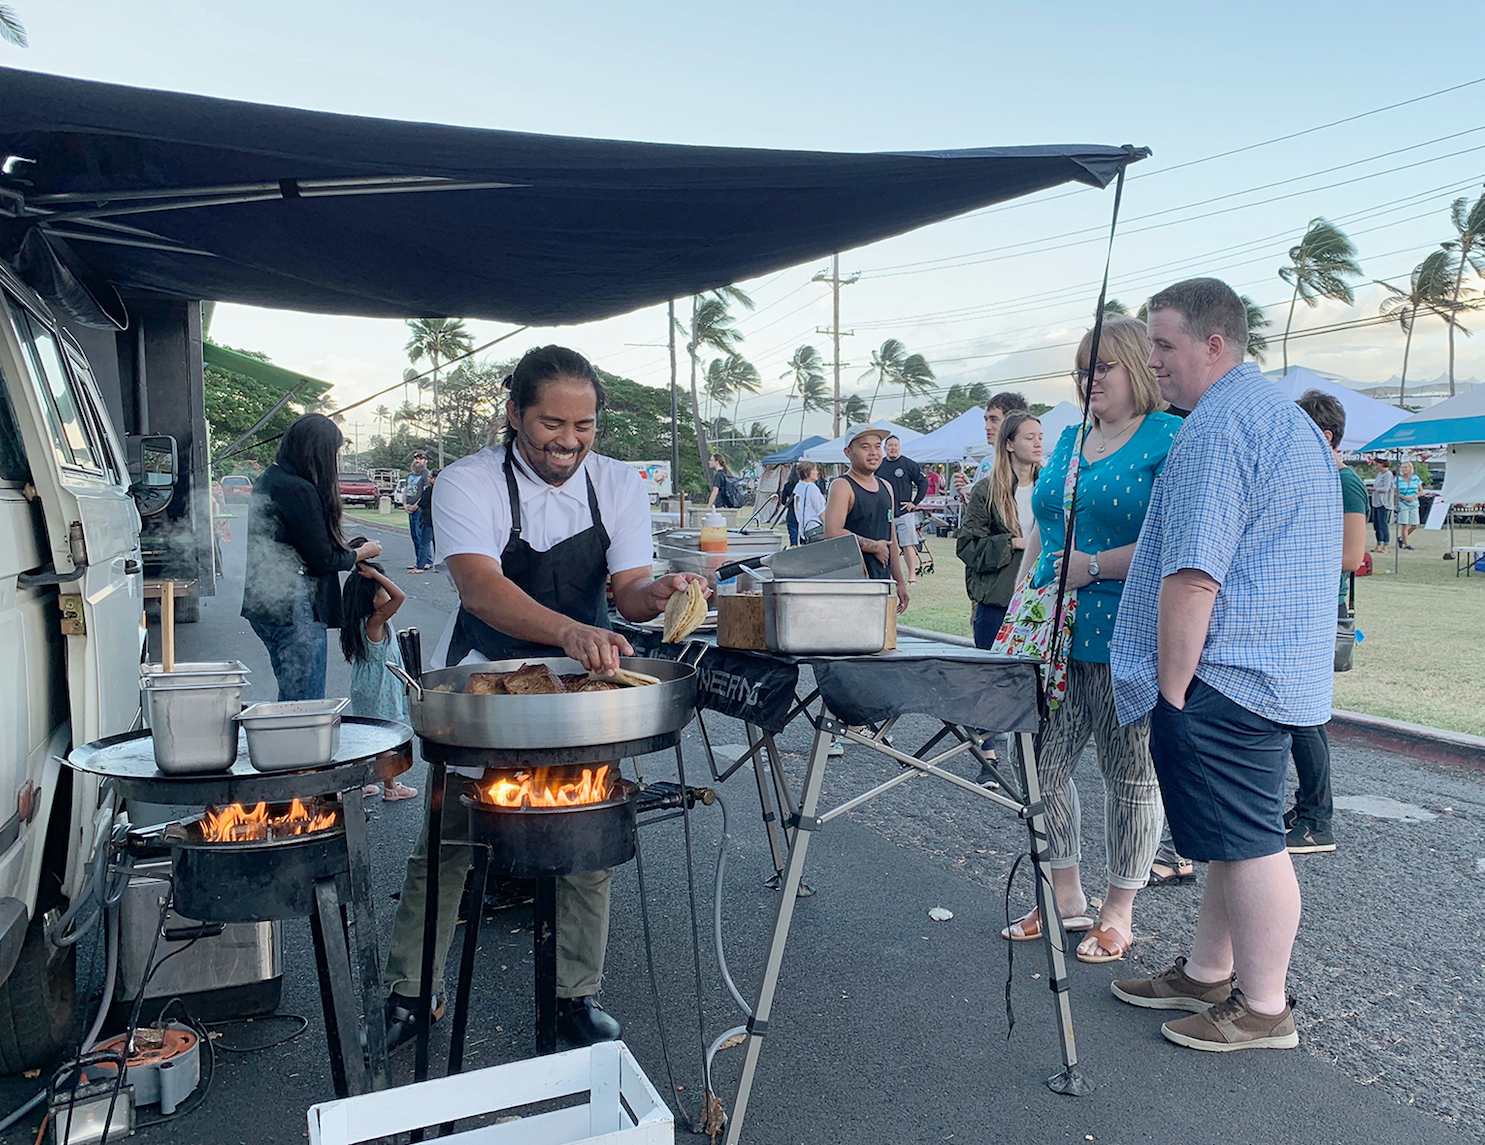 Tight Tacos owner Reggie Ballesteros prepares his Mexican dishes with Hawaiian flavors during the Maui Street Market held at the UH Maui College on Dec. 6.